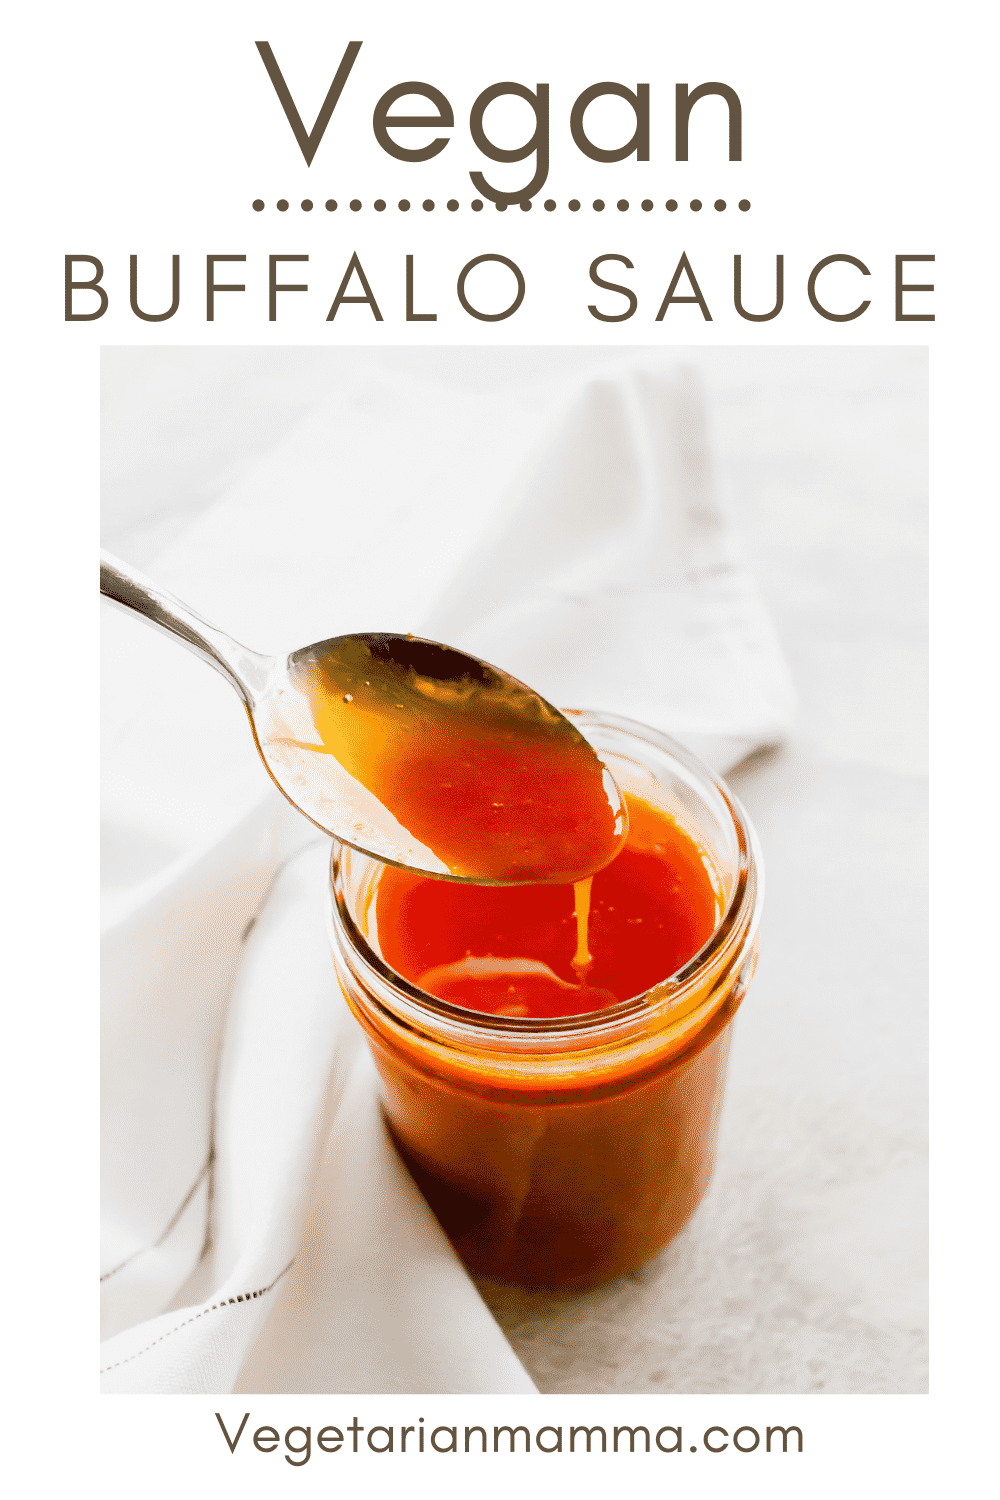 Vegan Buffalo Sauce is so luscious with a spicy kick! You only need 5 ingredients to whip up this simple homemade buffalo sauce in just a few minutes.